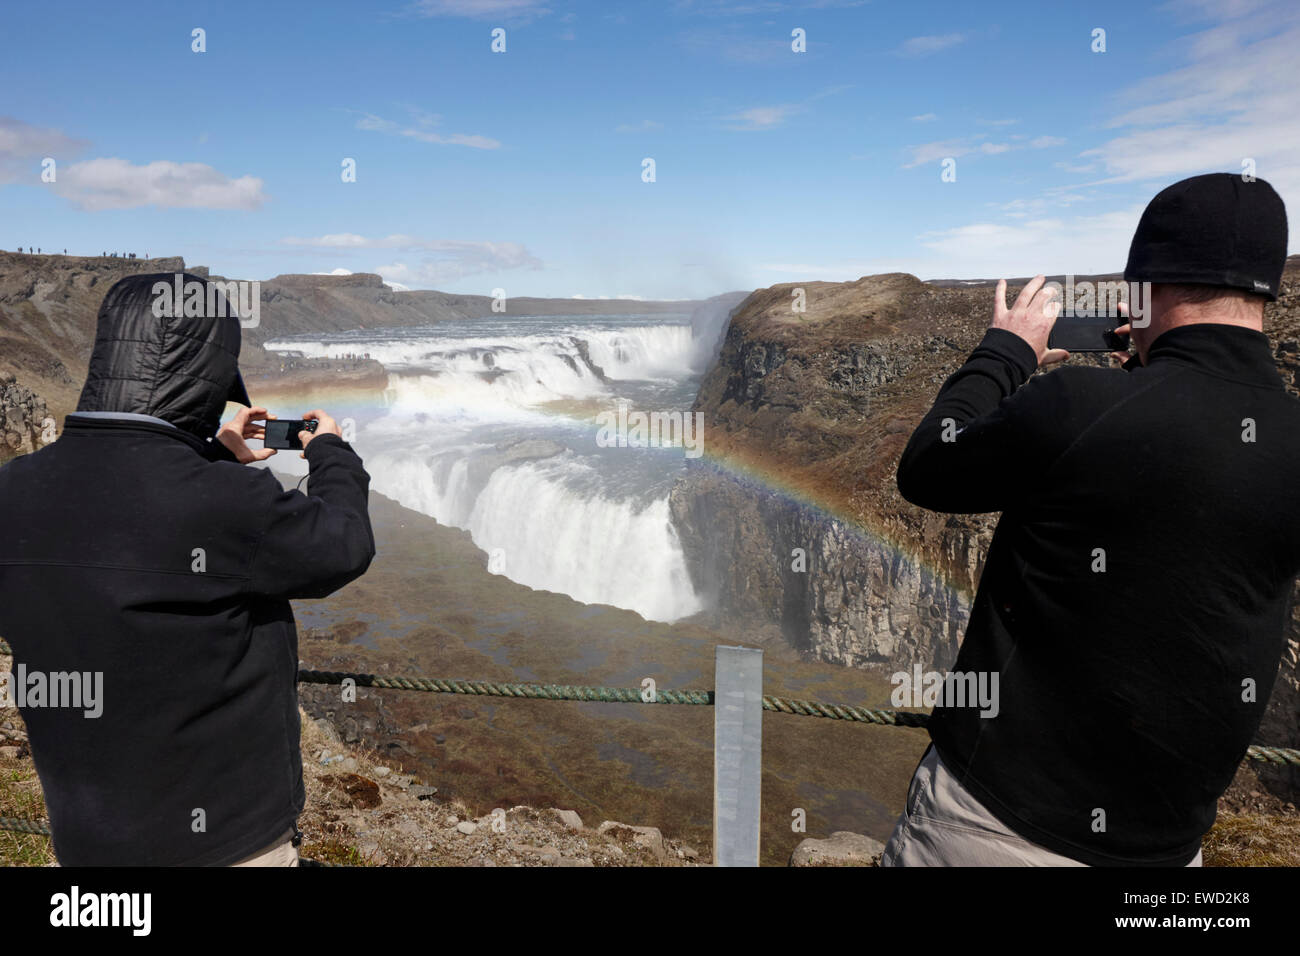 tourists taking photos with smartphones at Gullfoss waterfall Iceland - Stock Image